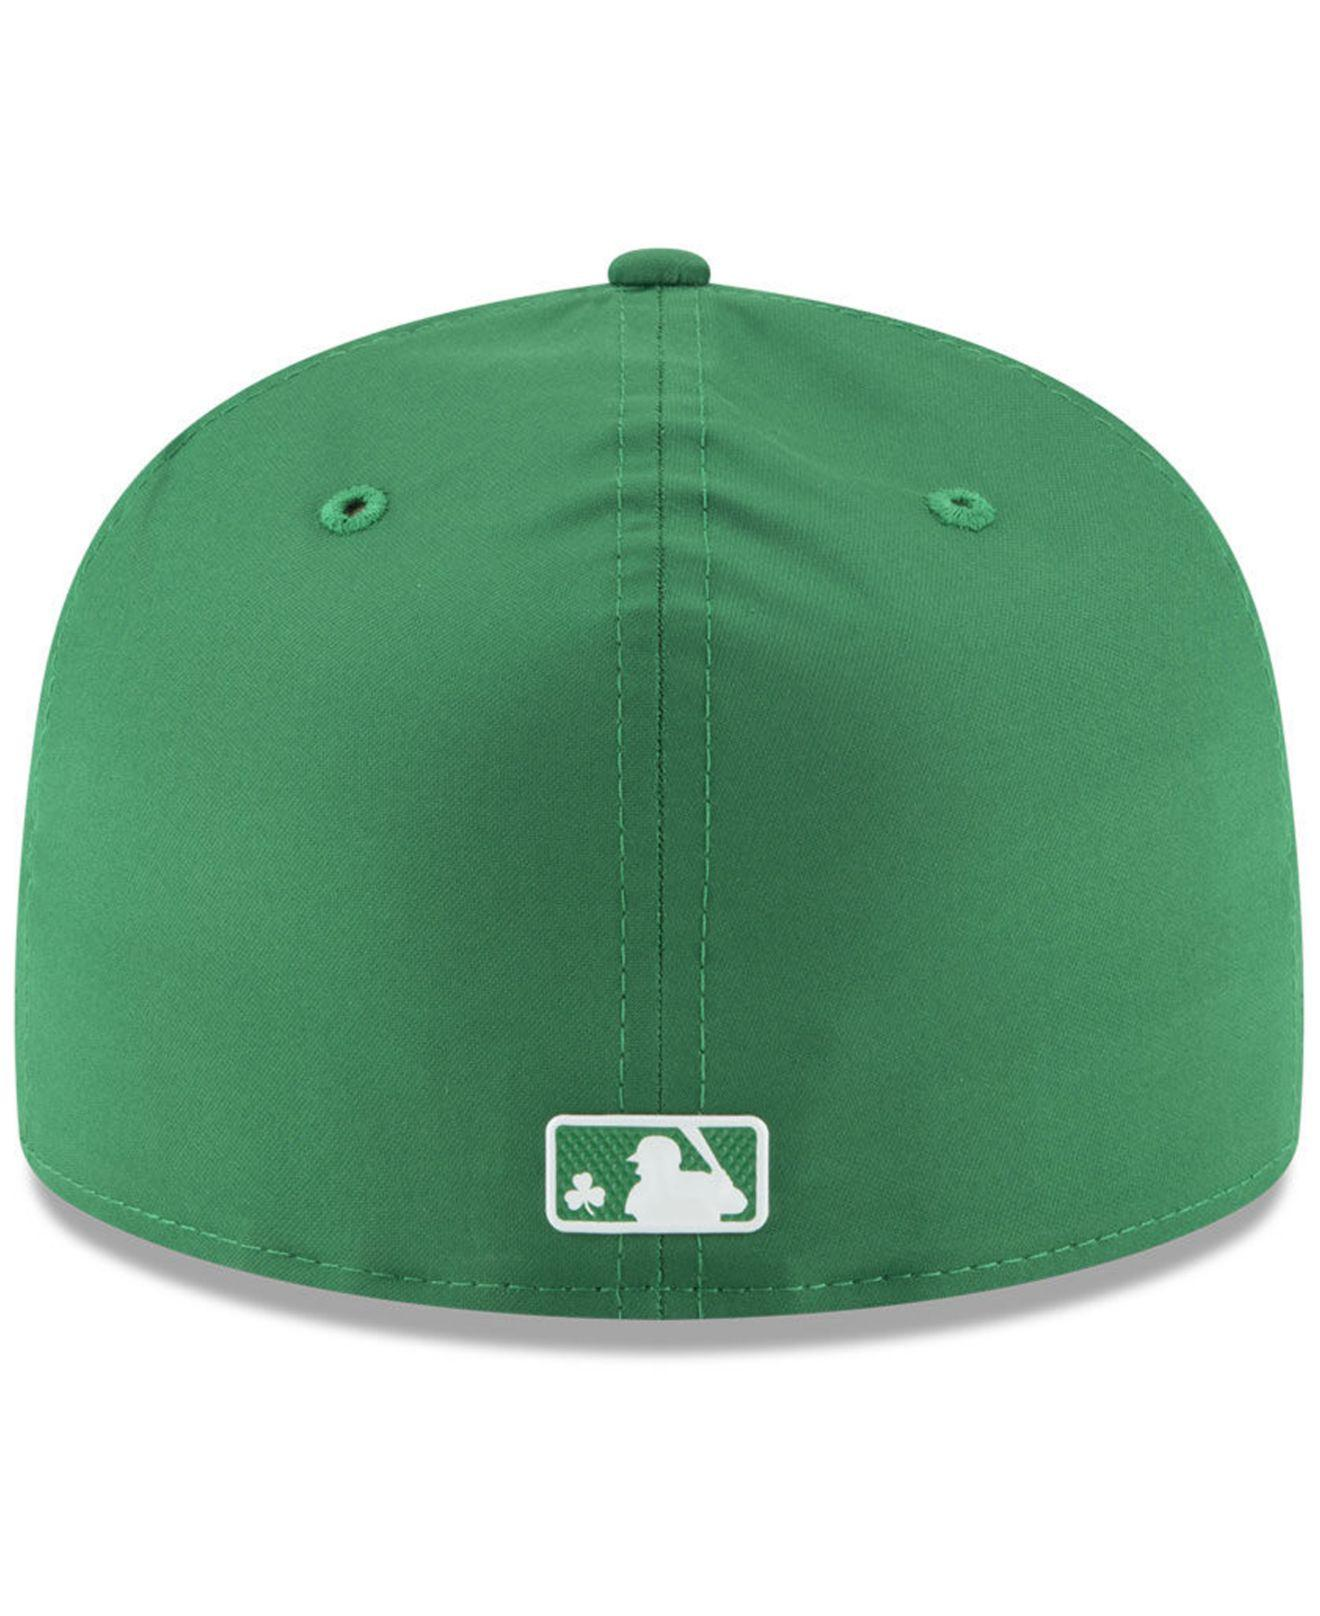 best sneakers 258d6 305f6 Lyst - KTZ New York Yankees St. Patty s Day Pro Light 59fifty Fitted ...